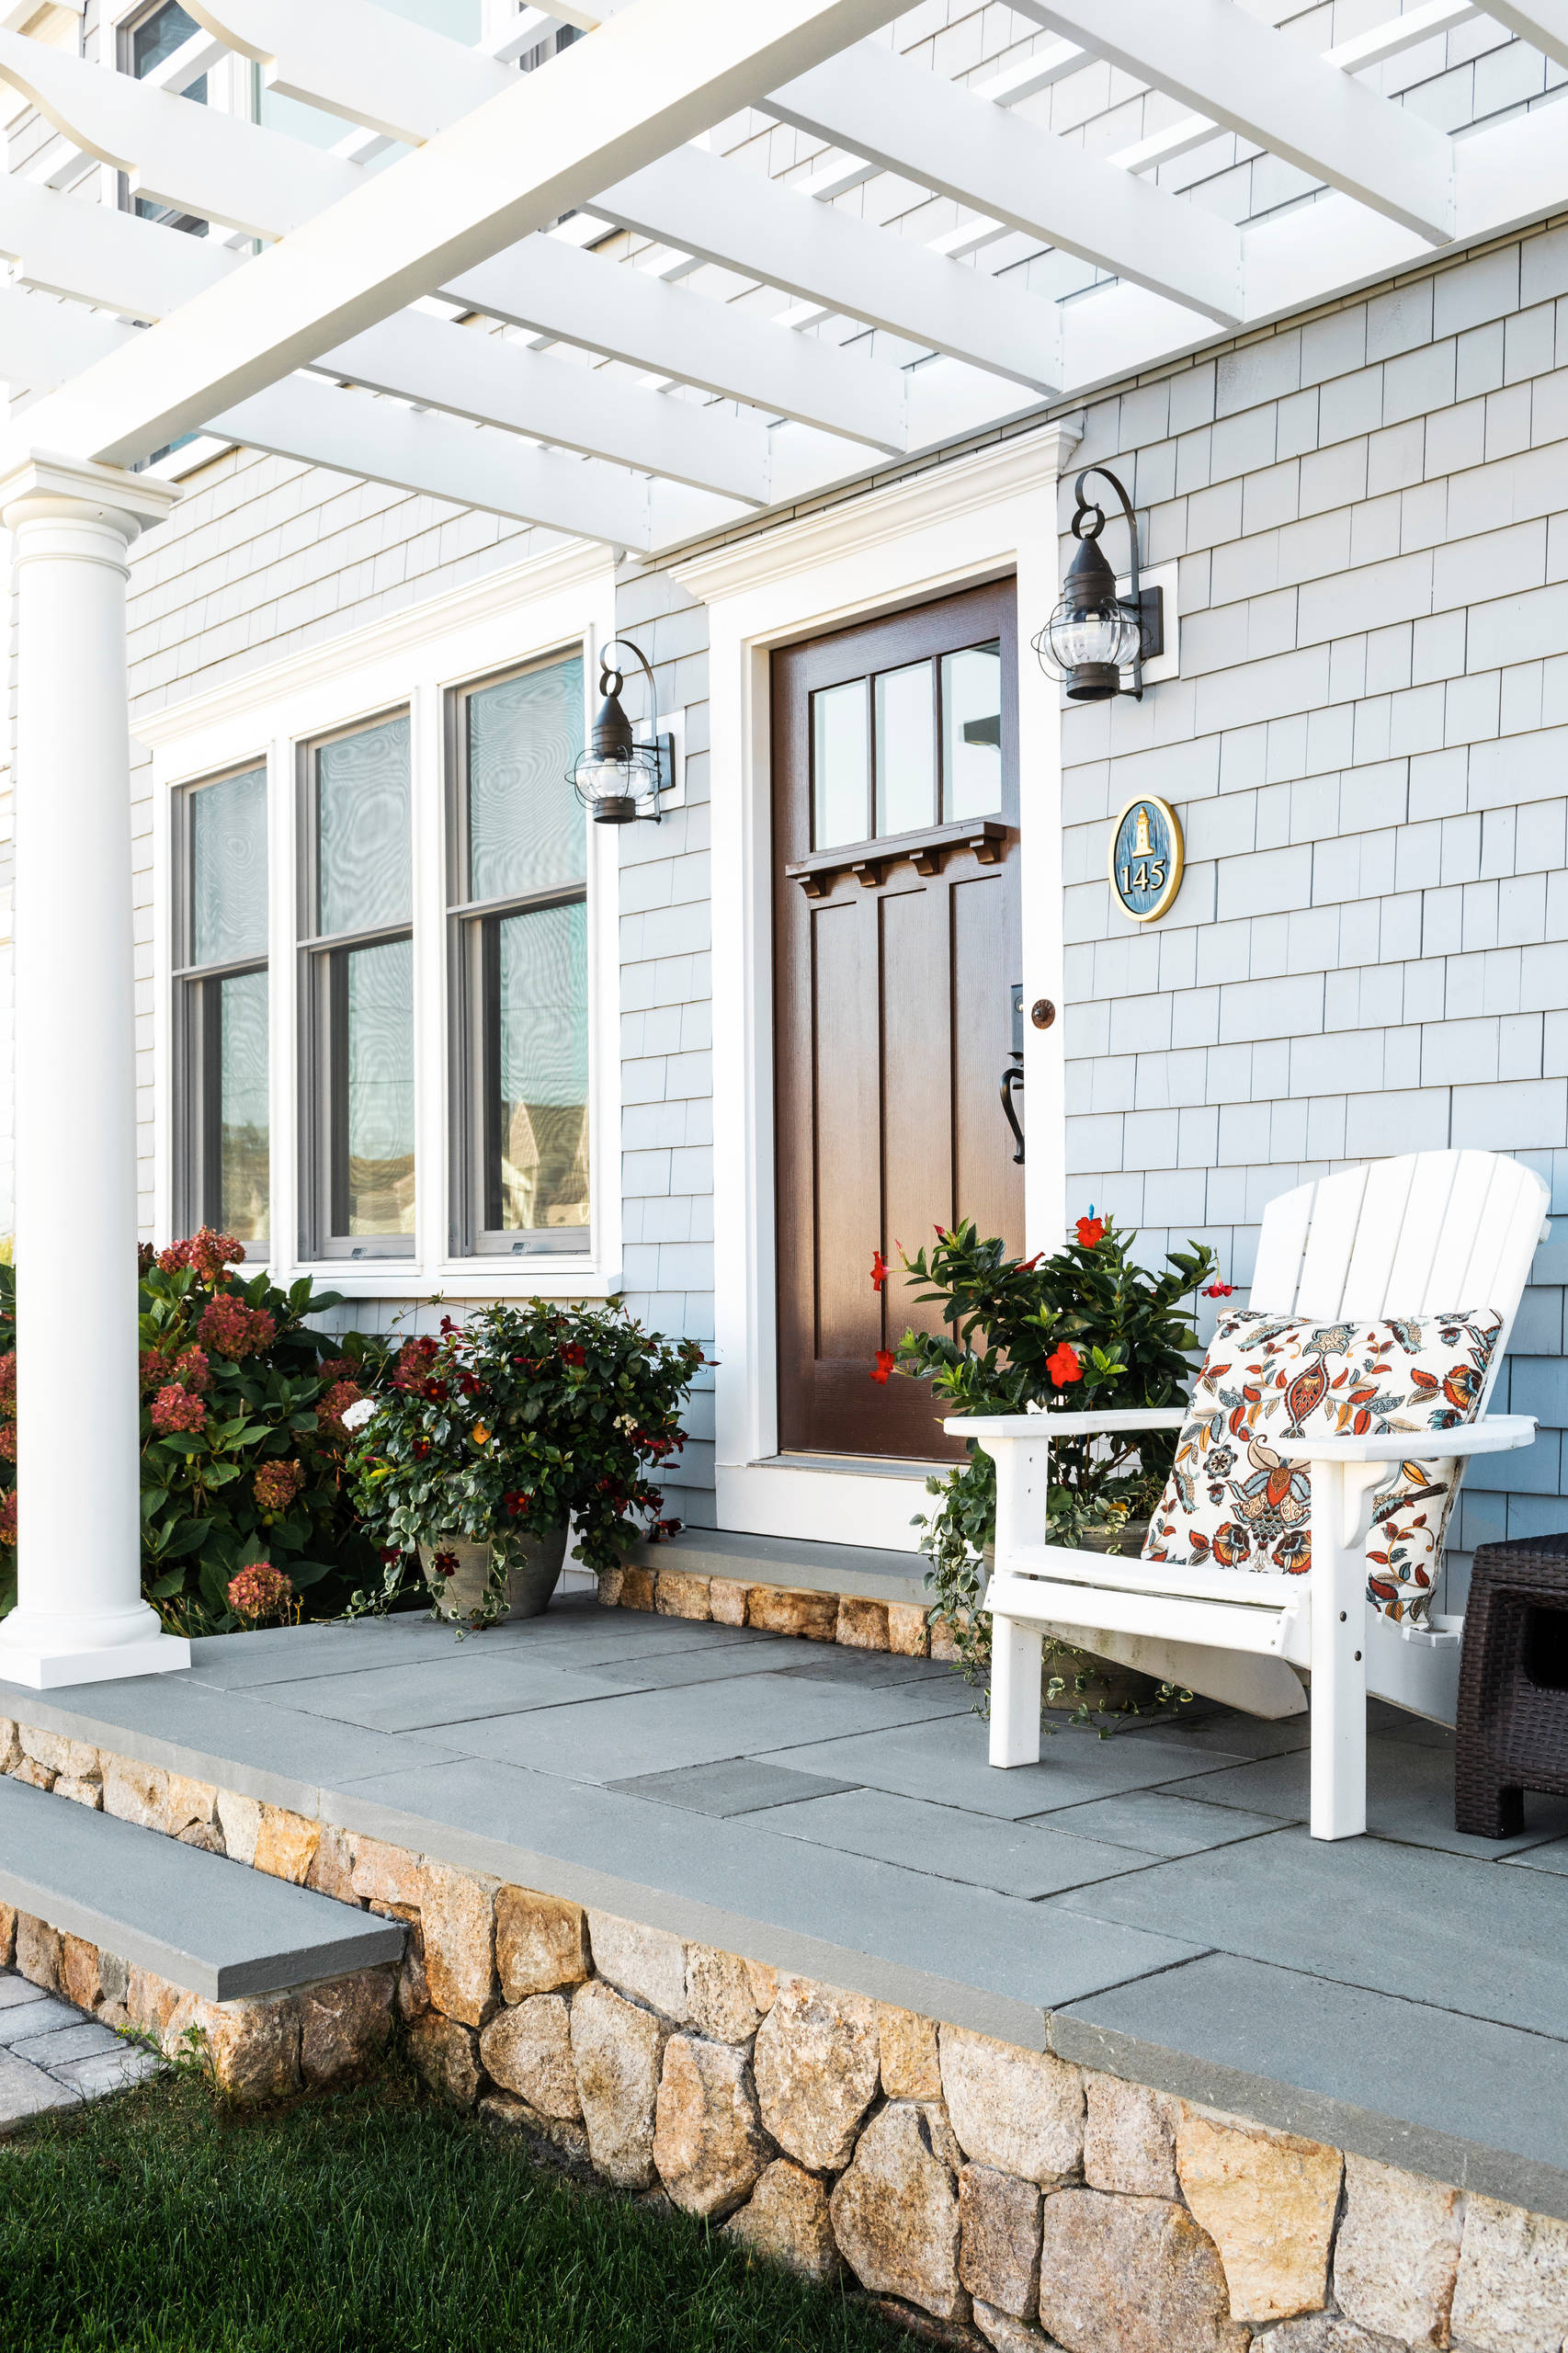 75 Beautiful Small Front Porch Pictures Ideas November 2020 Houzz